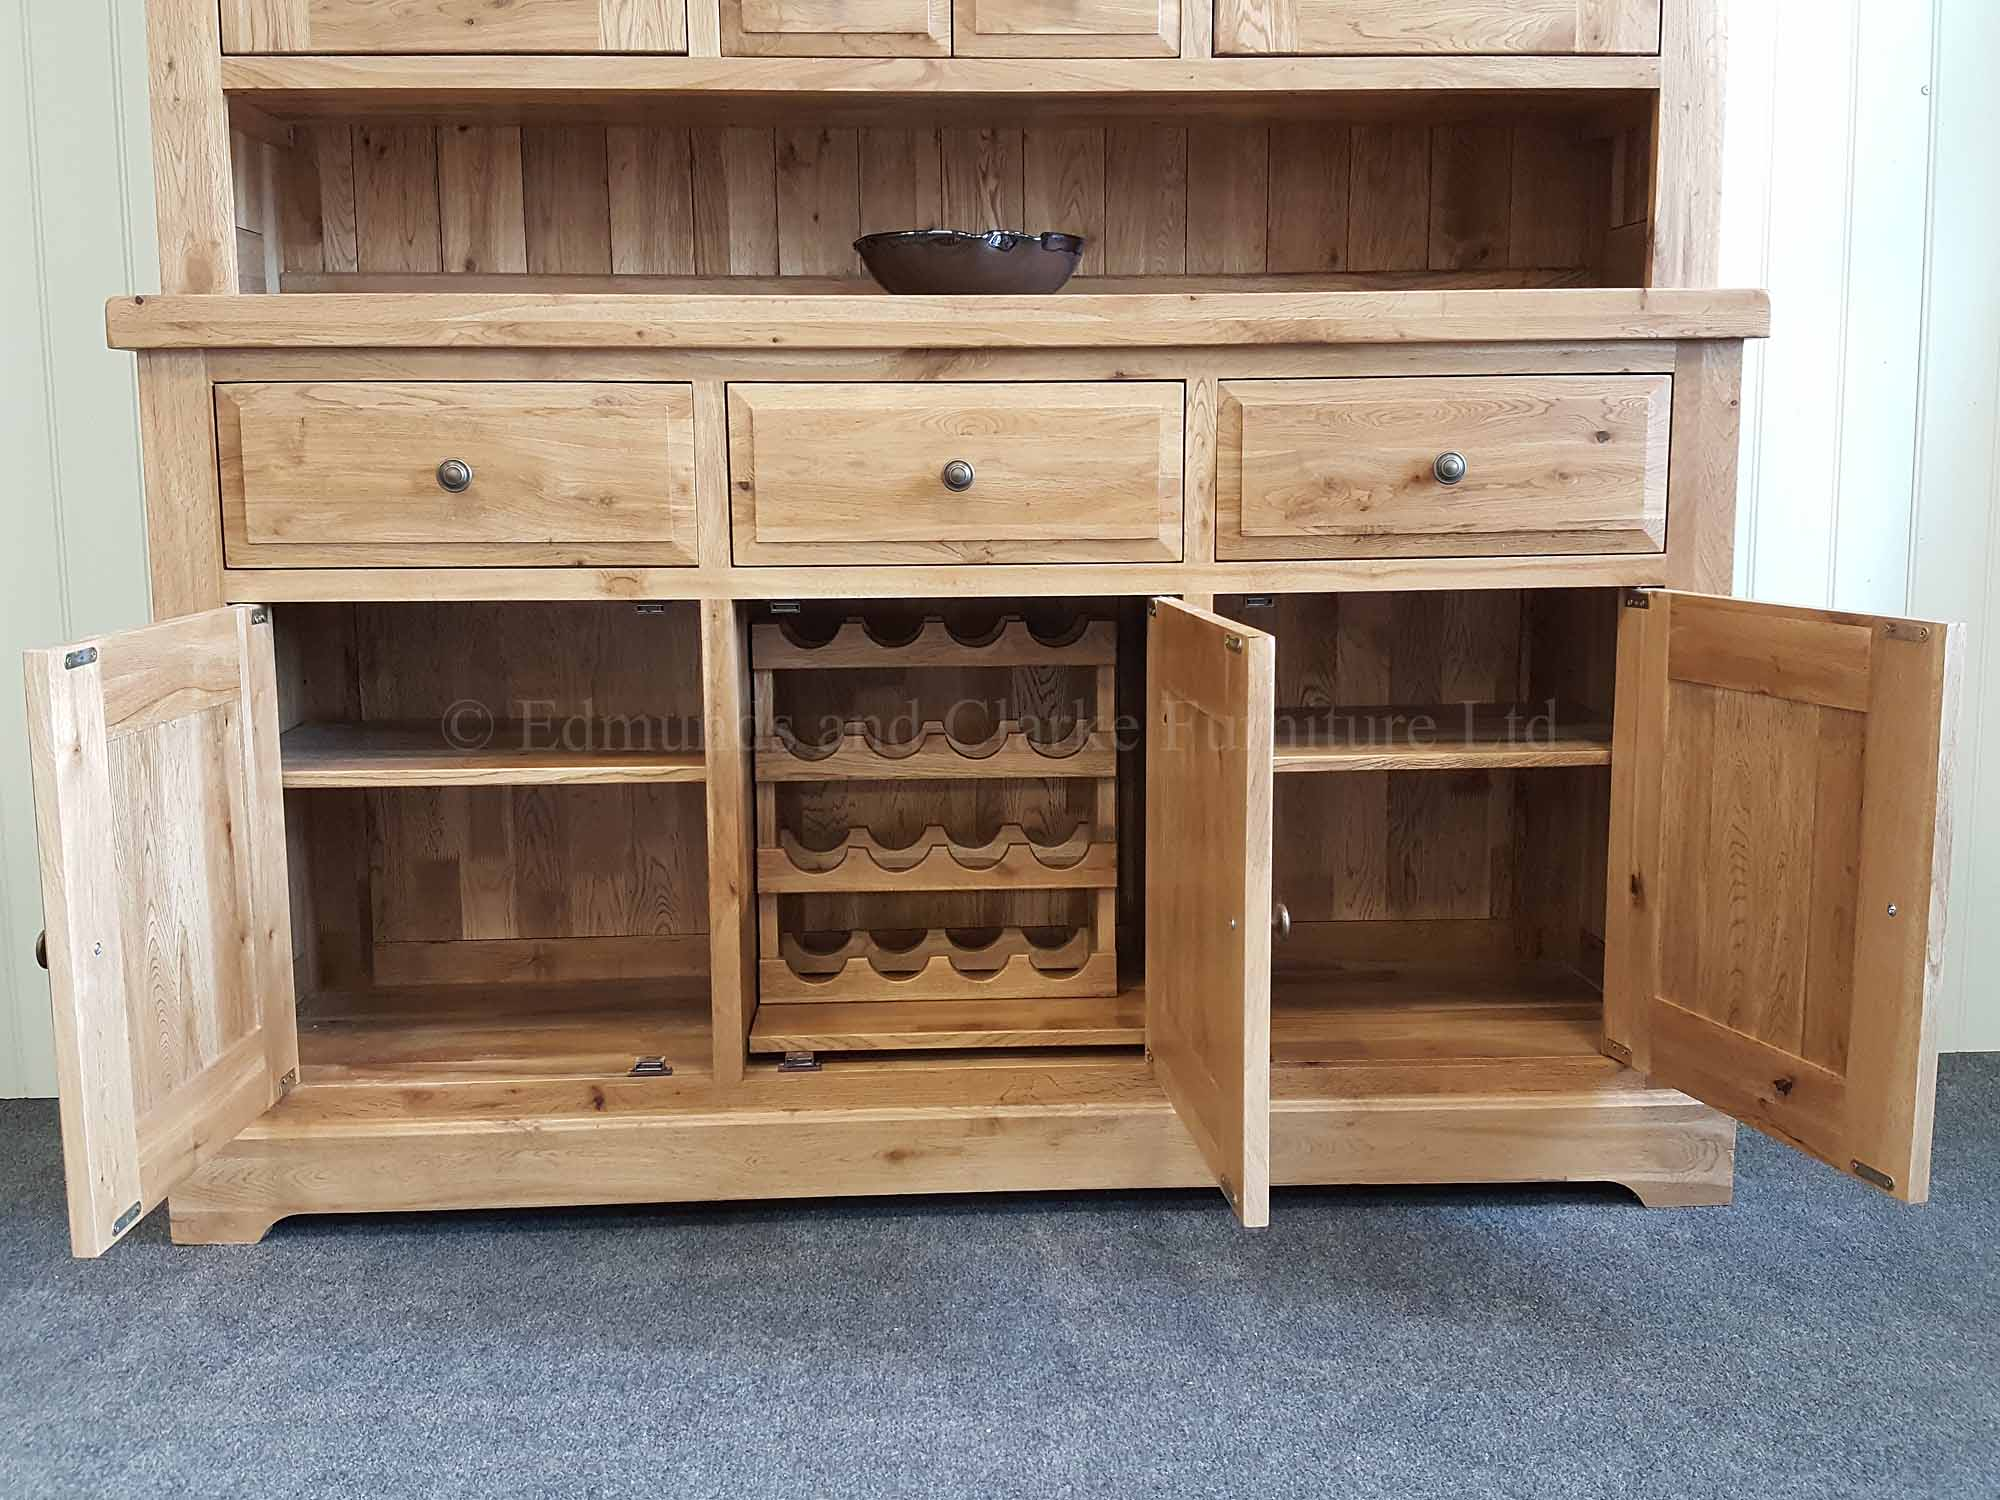 Kitchen dresser made from solid oak with loose wine rack in sideboard